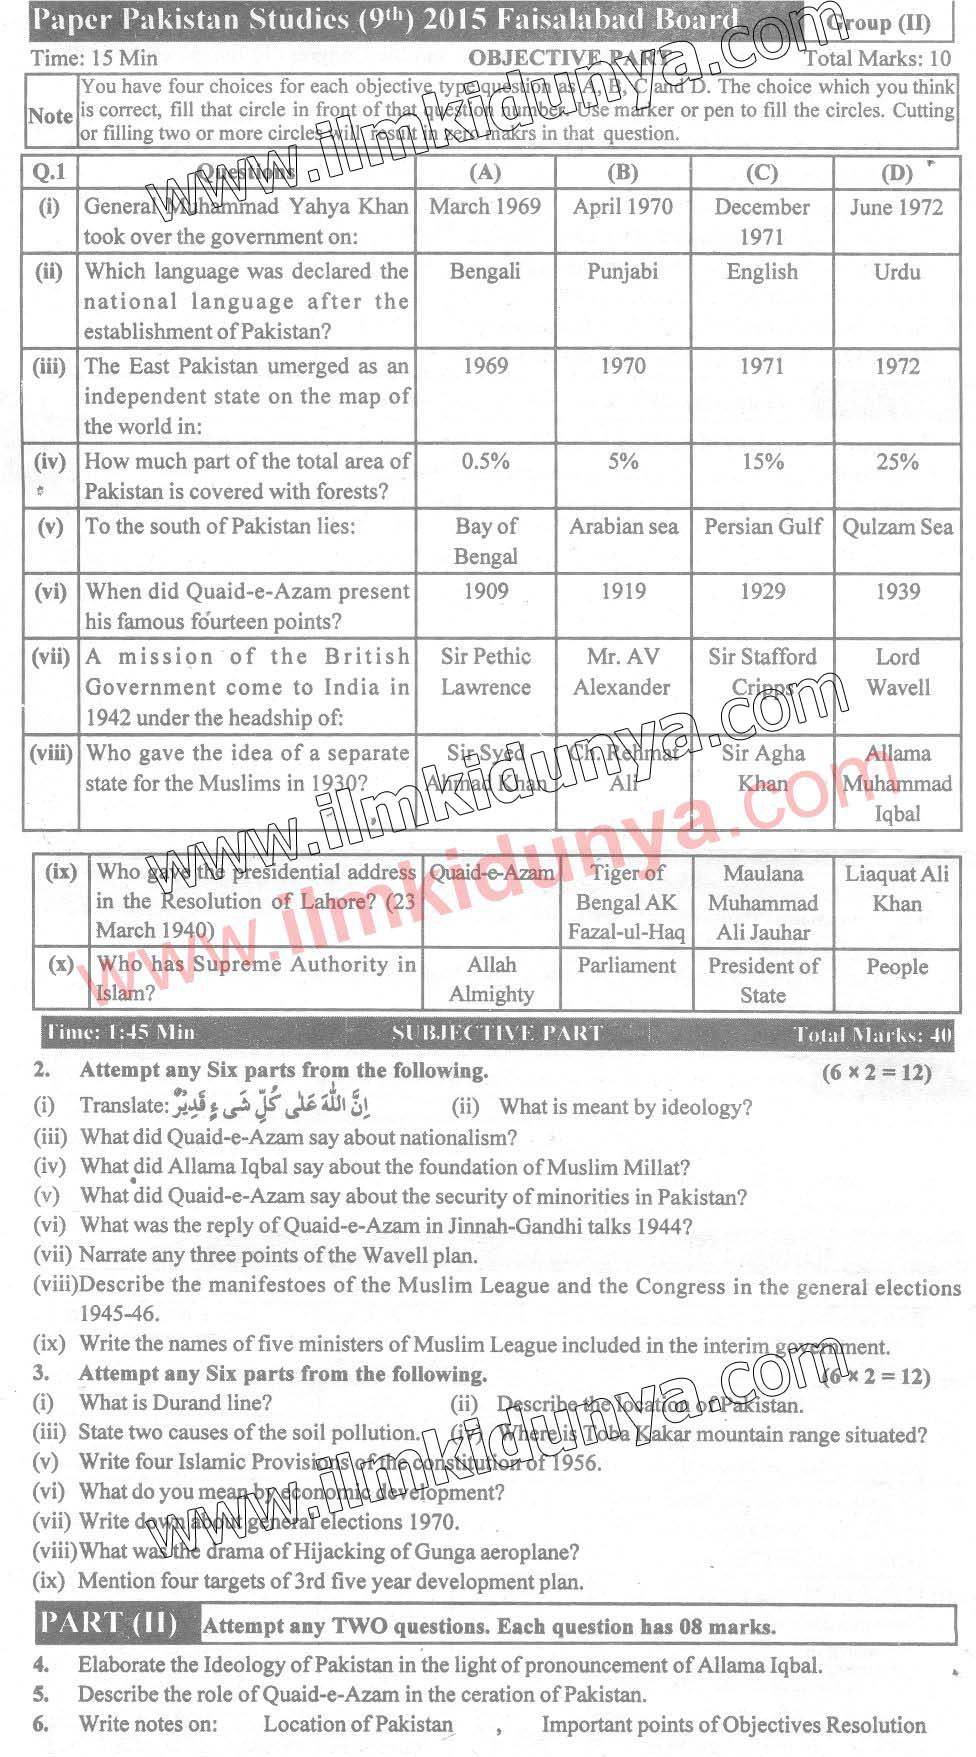 Past Papers 2015 Faisalabad Board 9th Class Pak Studies